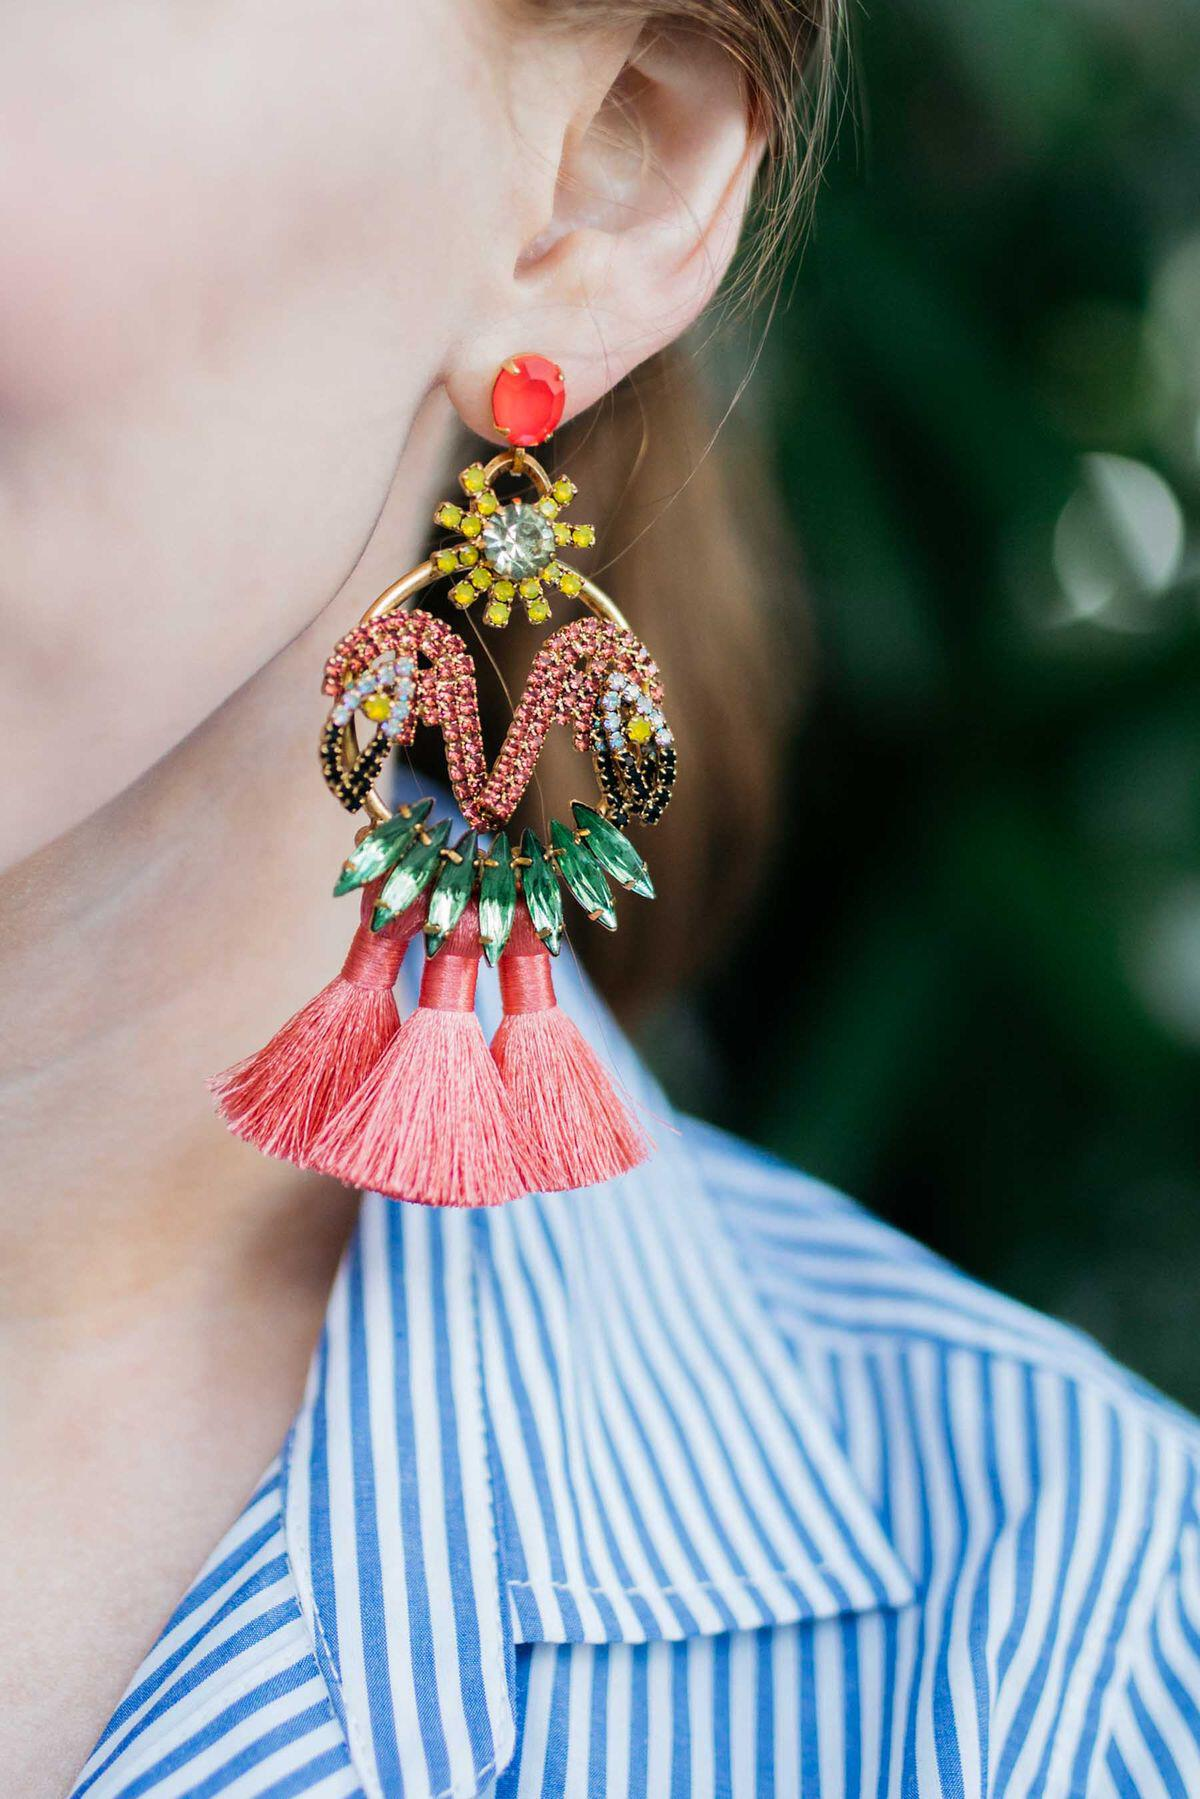 15 flattering ways to wear statement earrings 10 - 15 flattering ways to wear statement earrings